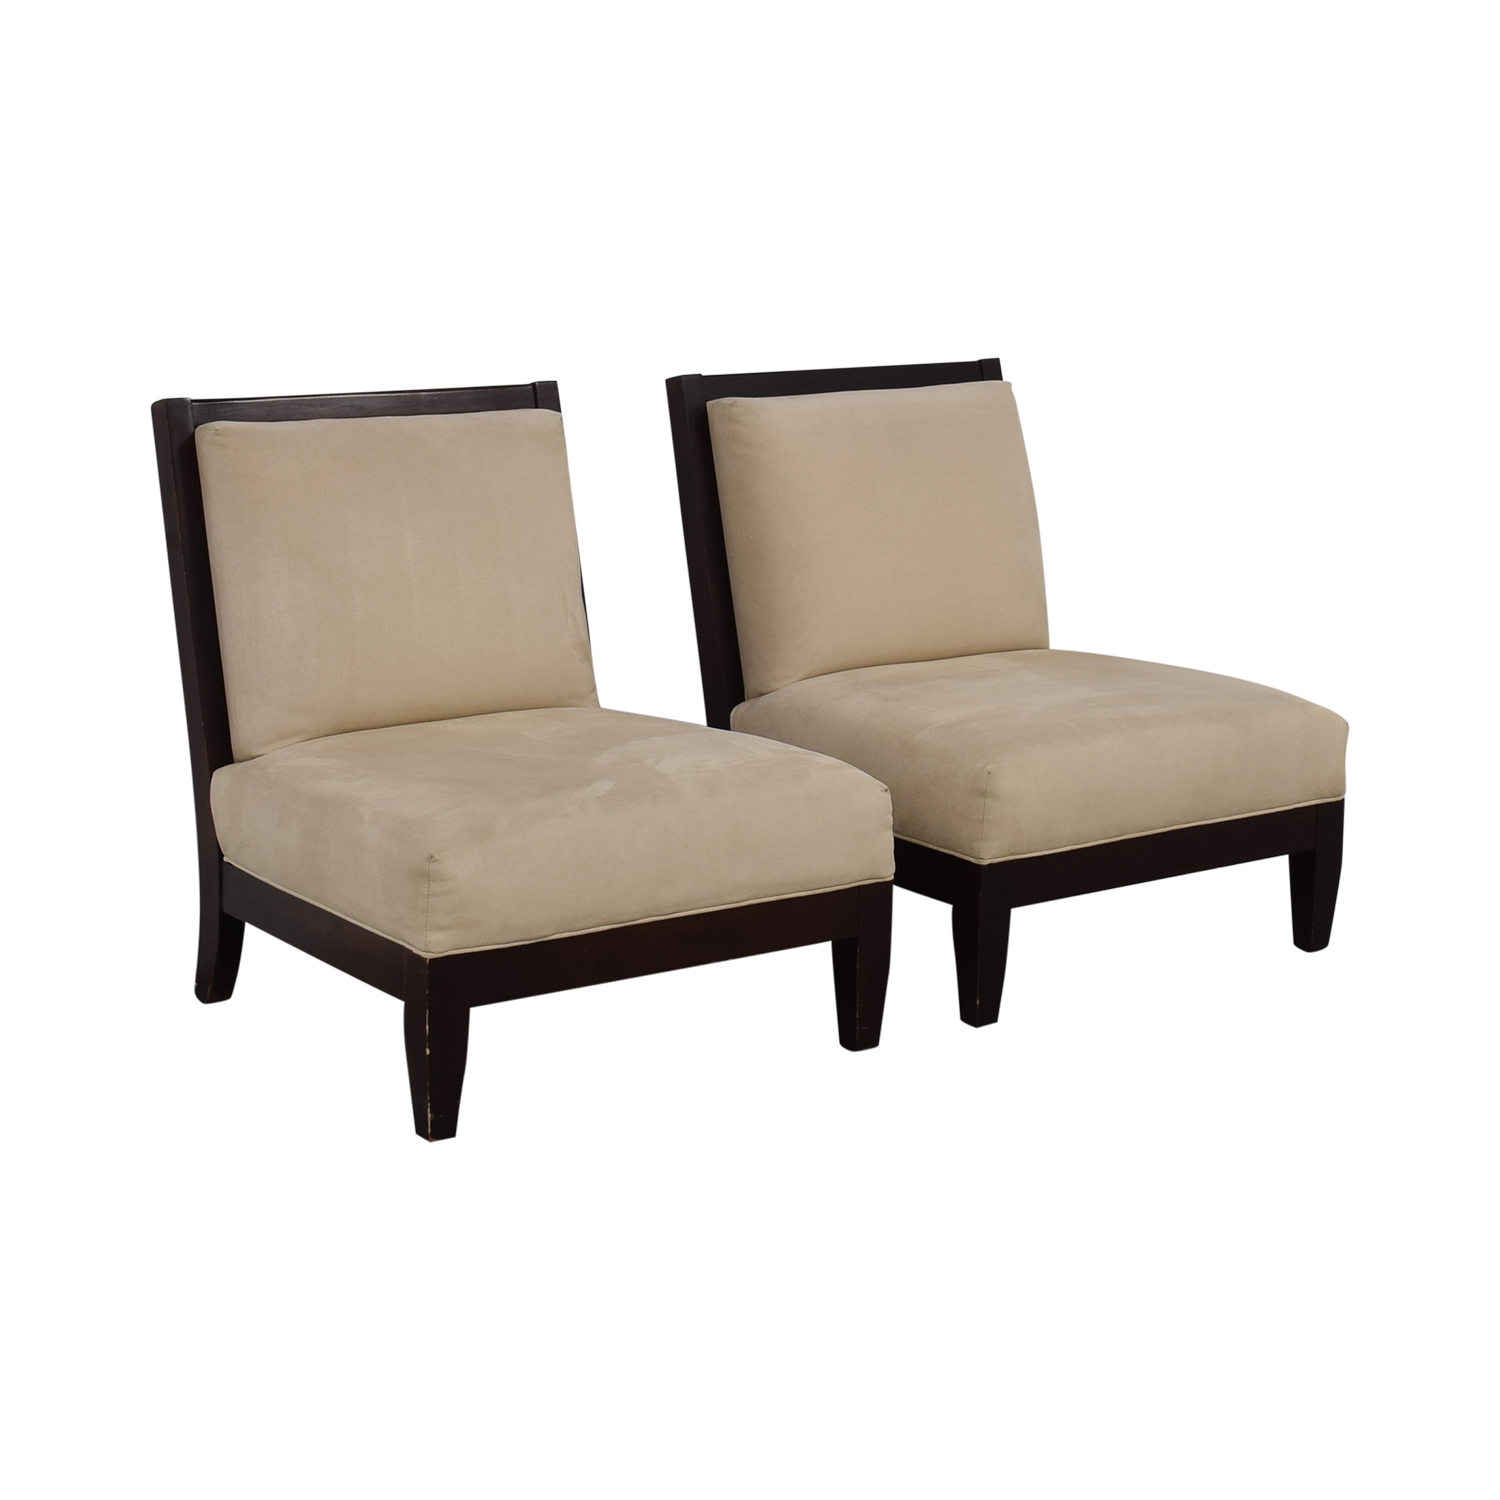 Room & Board Beige and Black Accent Chairs sale